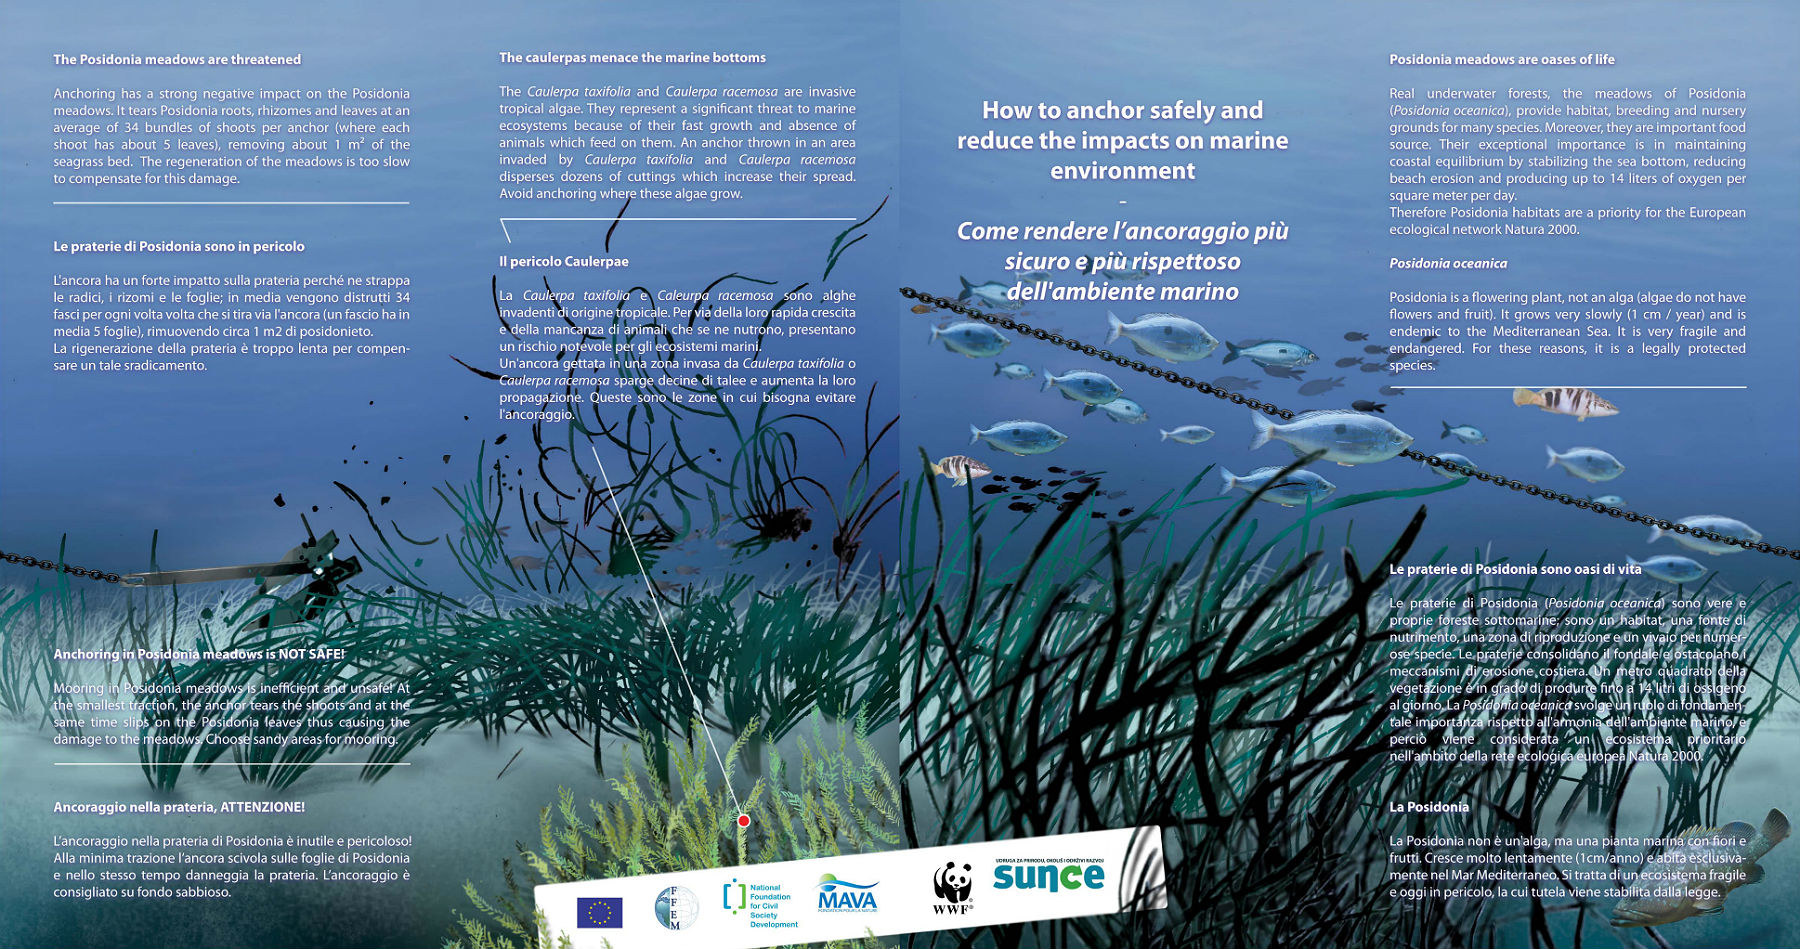 How to anchor safely and reduce the impacts on marine environment